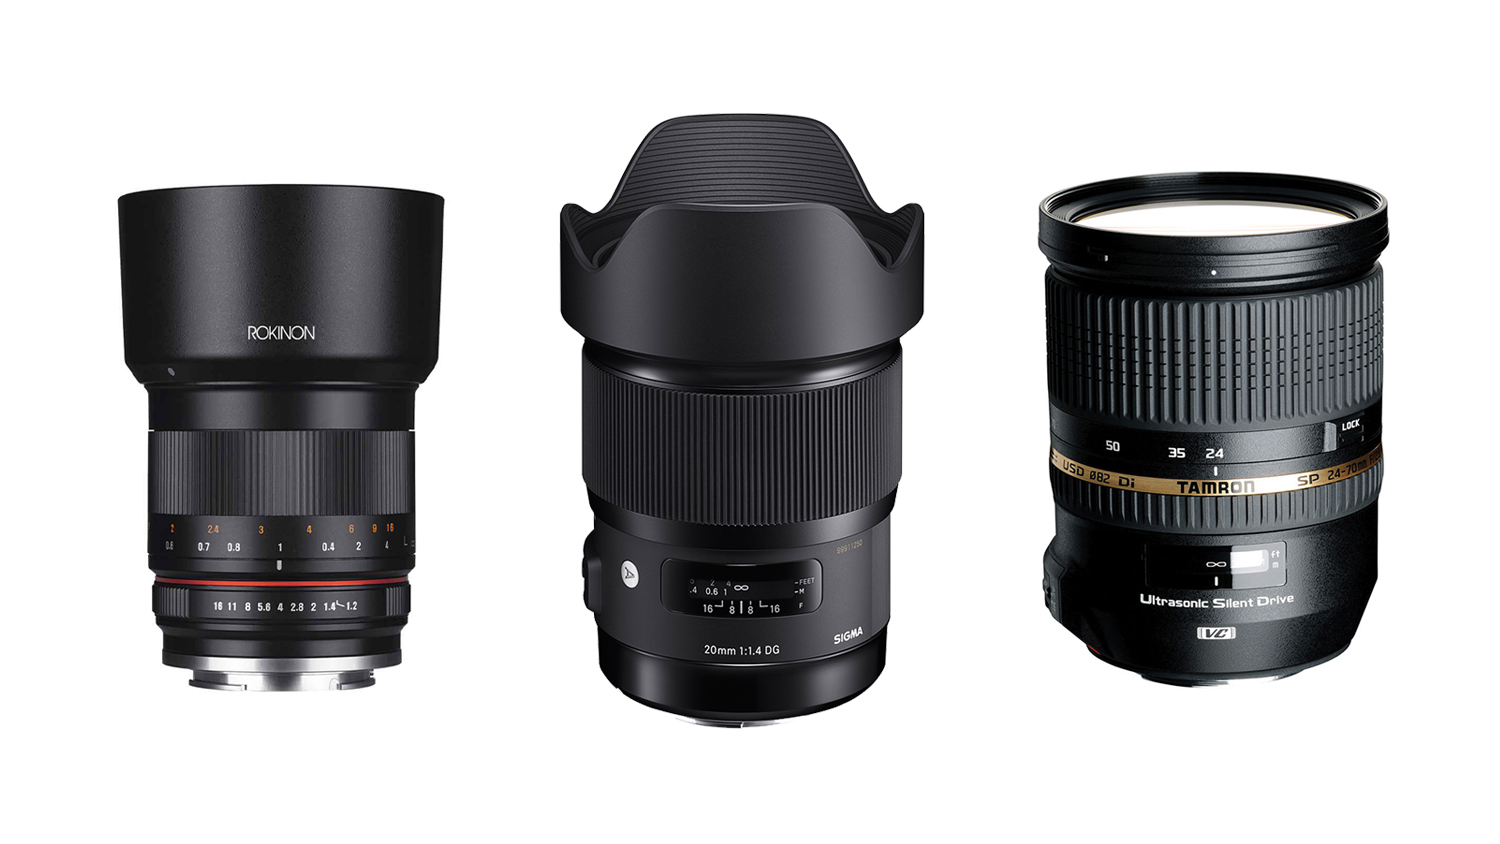 Rokinon 50mm f/1.4, Sigma 21mm f/1.4 and Tamron 24-70mm f/2.8 VC